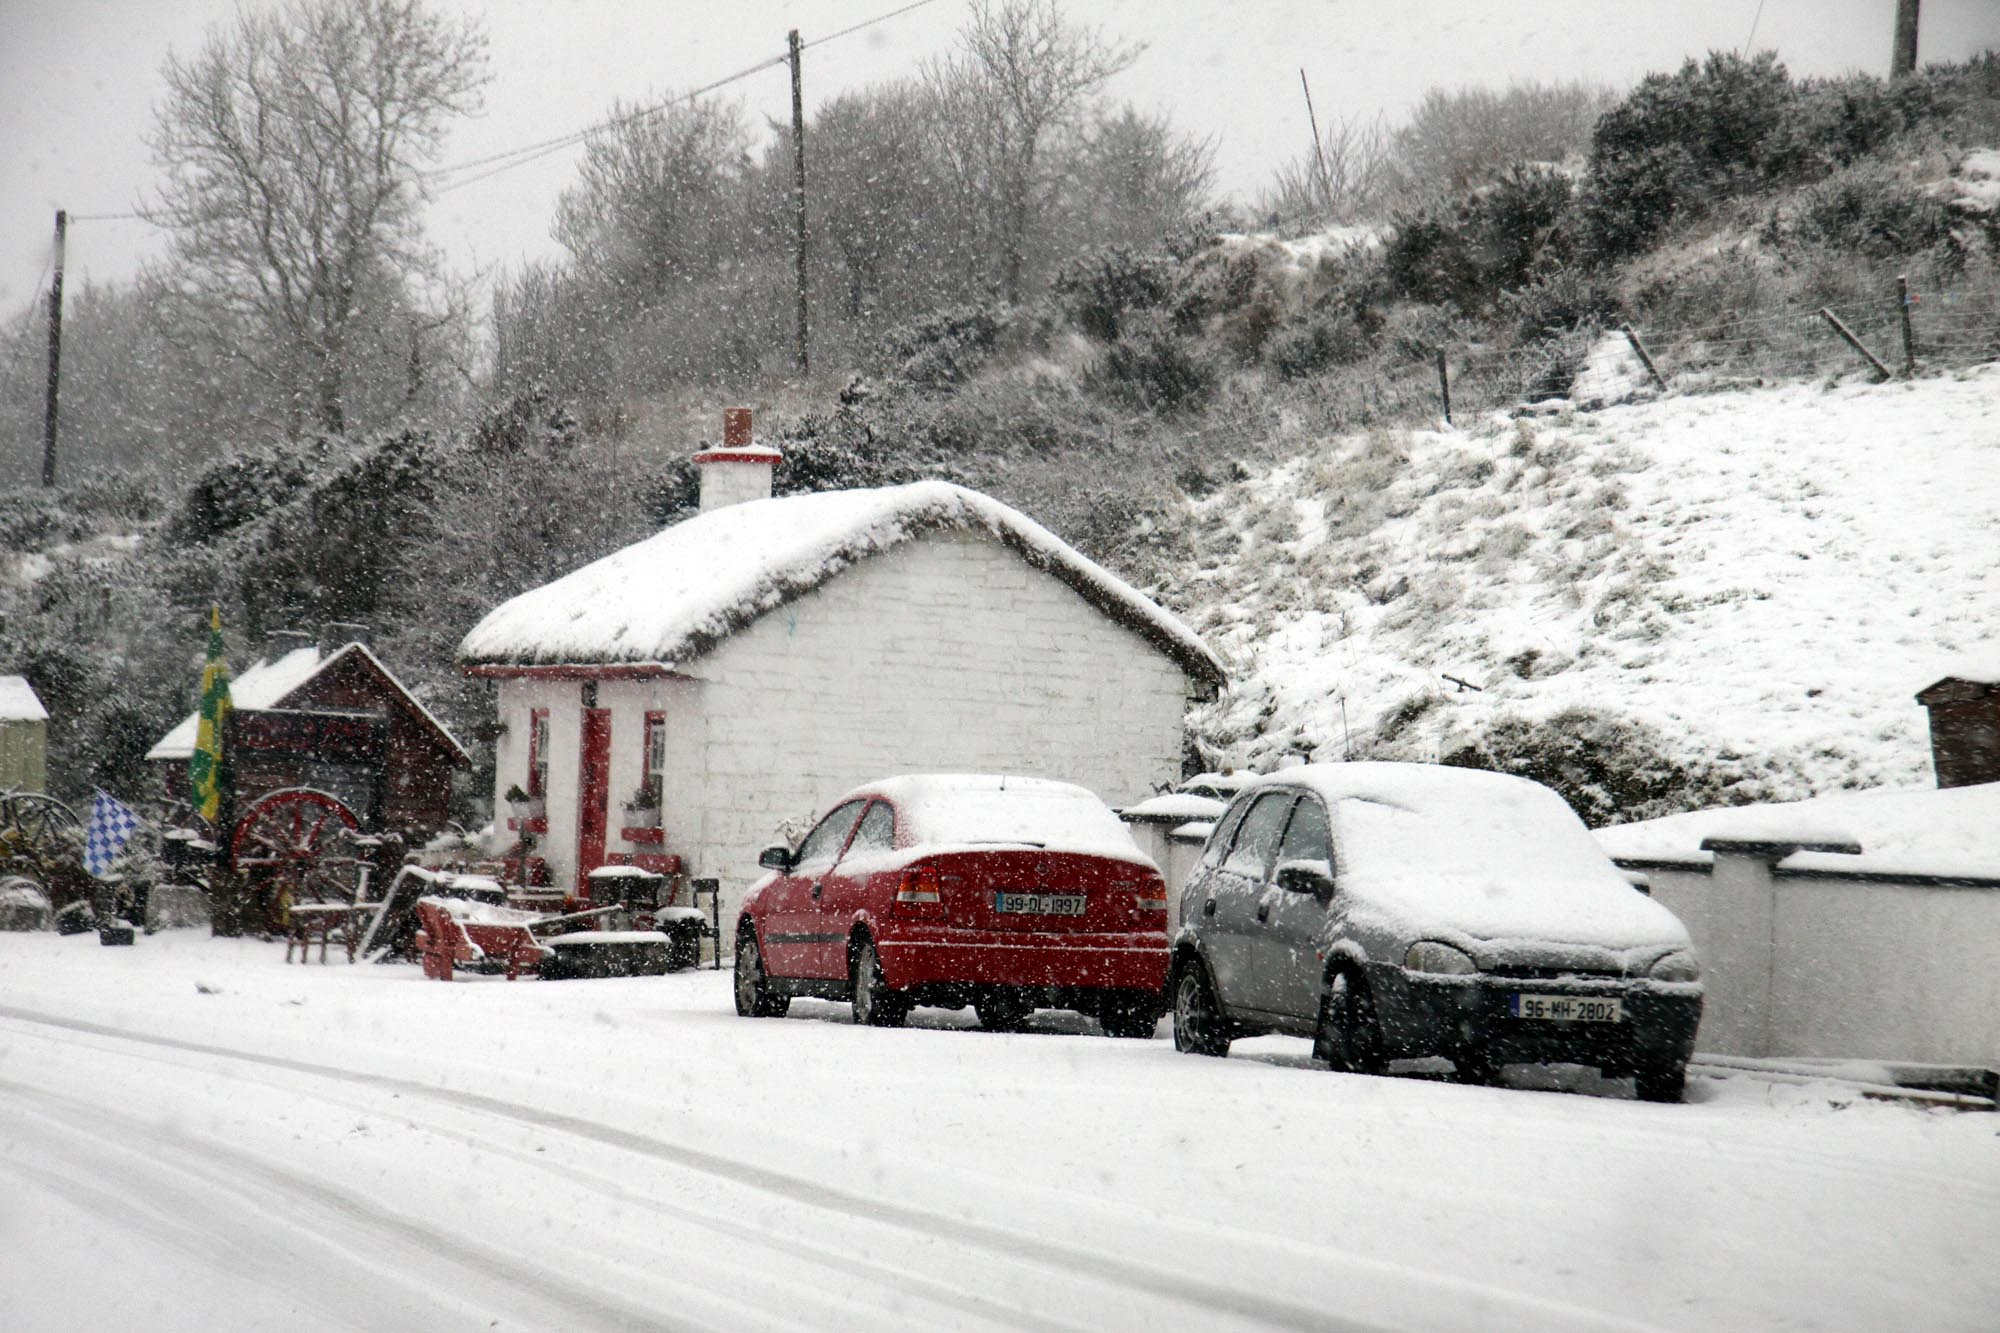 Nationwide weather warning announced as ice and snow expected